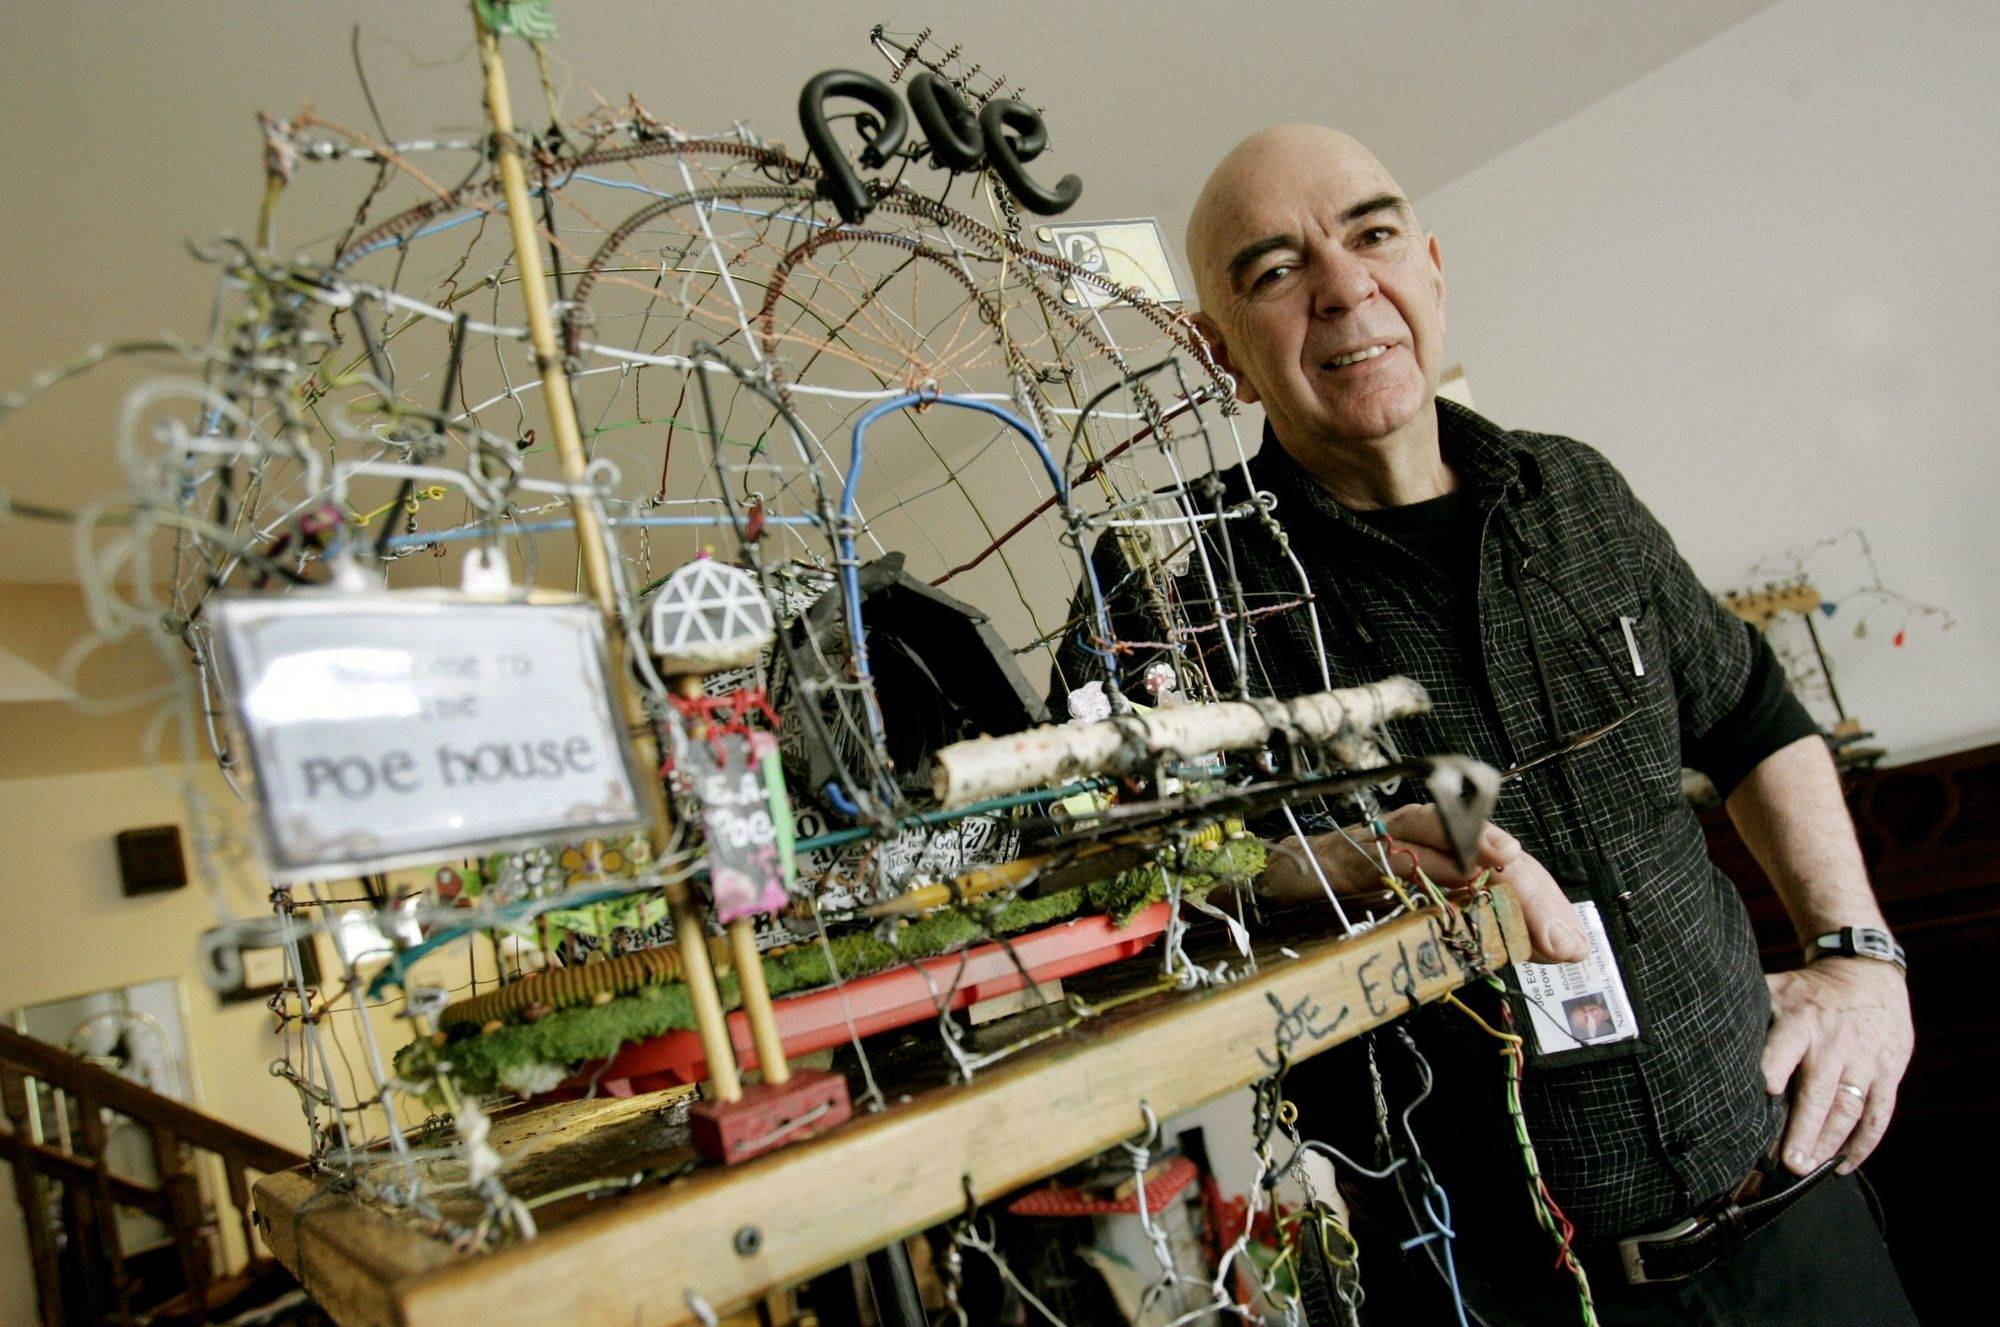 Wheaton artist Joe Eddy Brown shows the bird cage sculpture he will have in a show at the August House Studio in Chicago. The geodesic dome bird cage is made of 42 coat hangers.